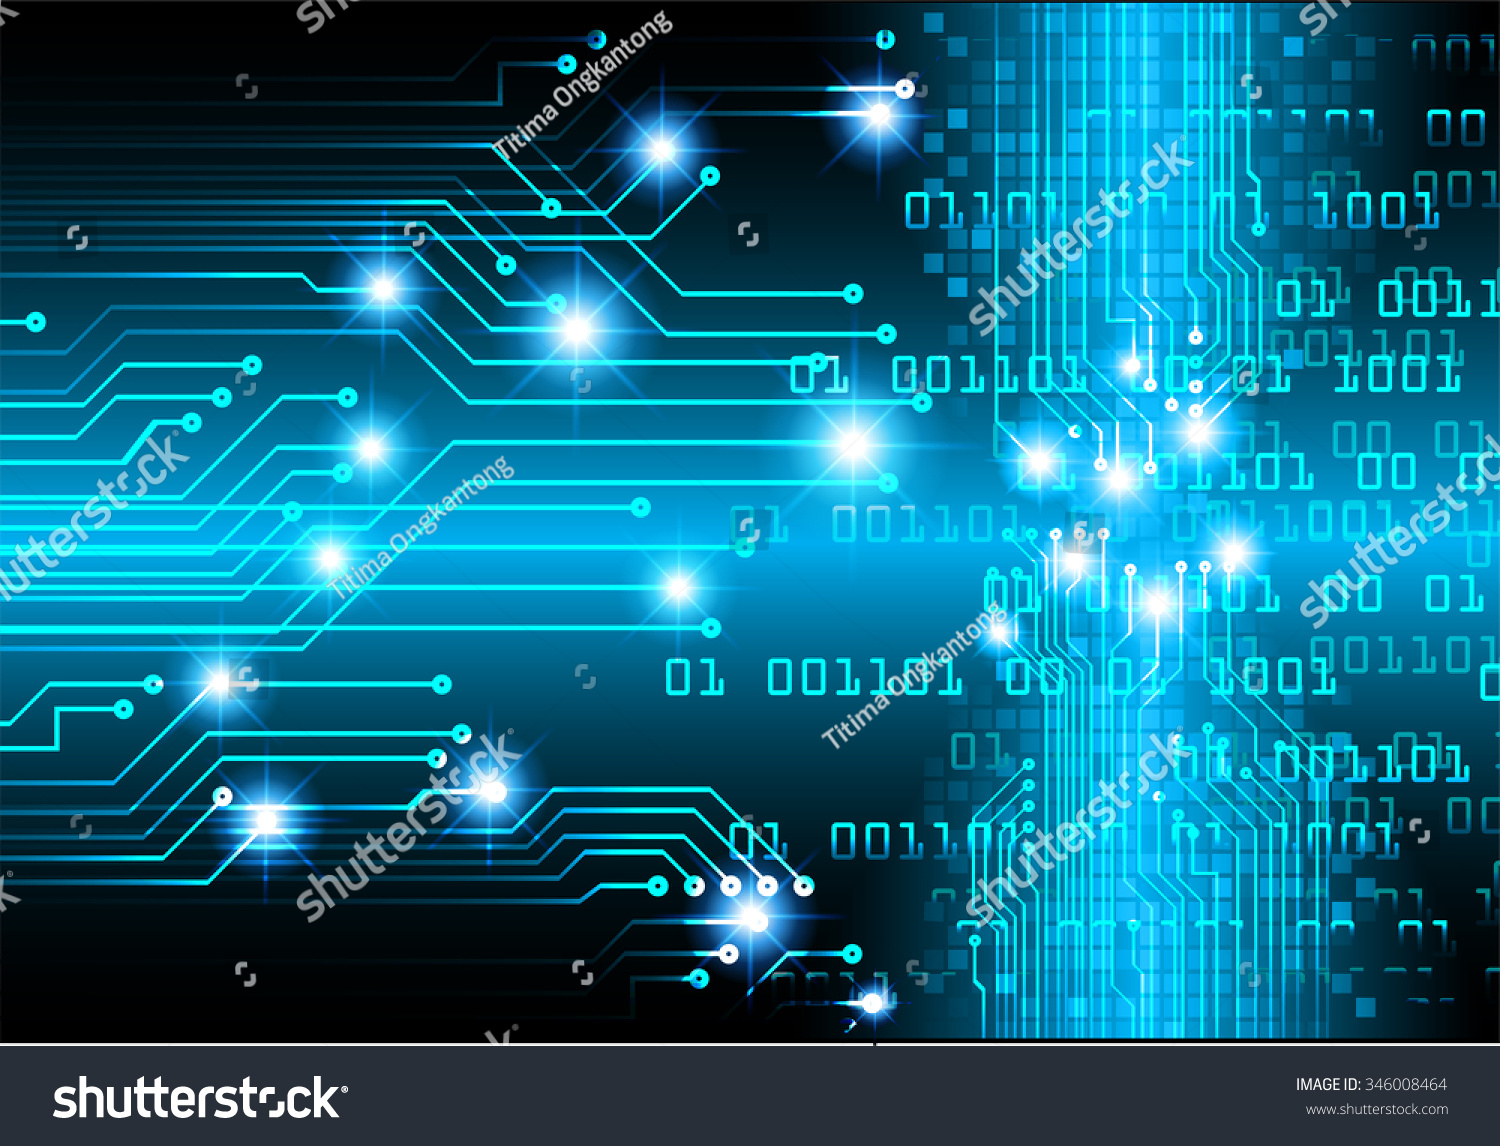 Dark Blue Color Light Abstract Technology Background For Computer Code And Circuit Board Illustration Id 346008464